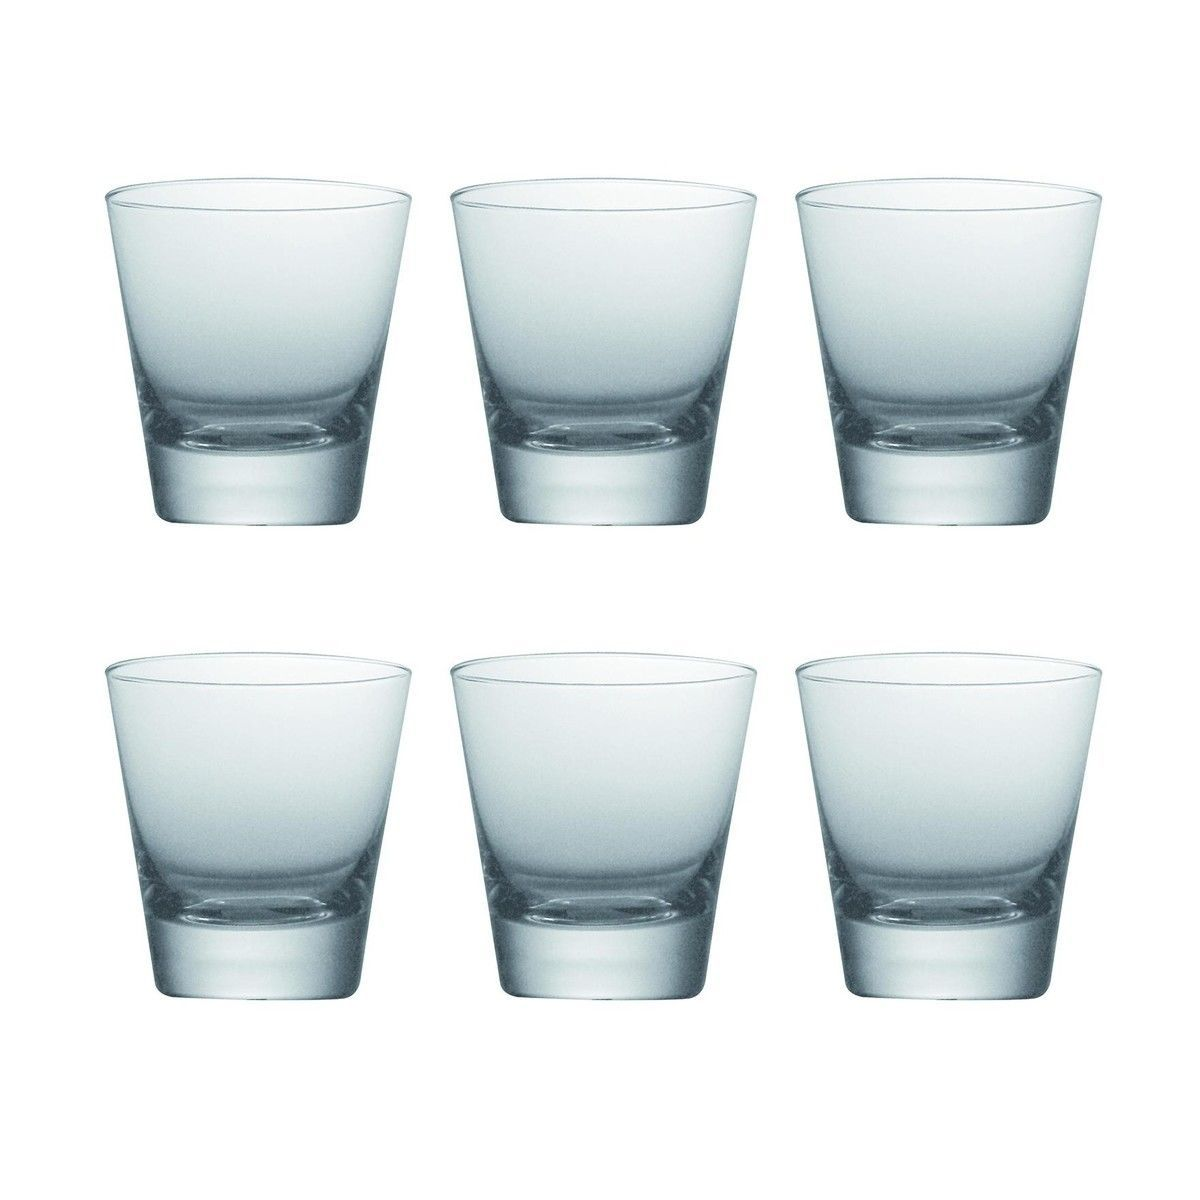 rosenthal divino whisky glass set of 6 rosenthal. Black Bedroom Furniture Sets. Home Design Ideas